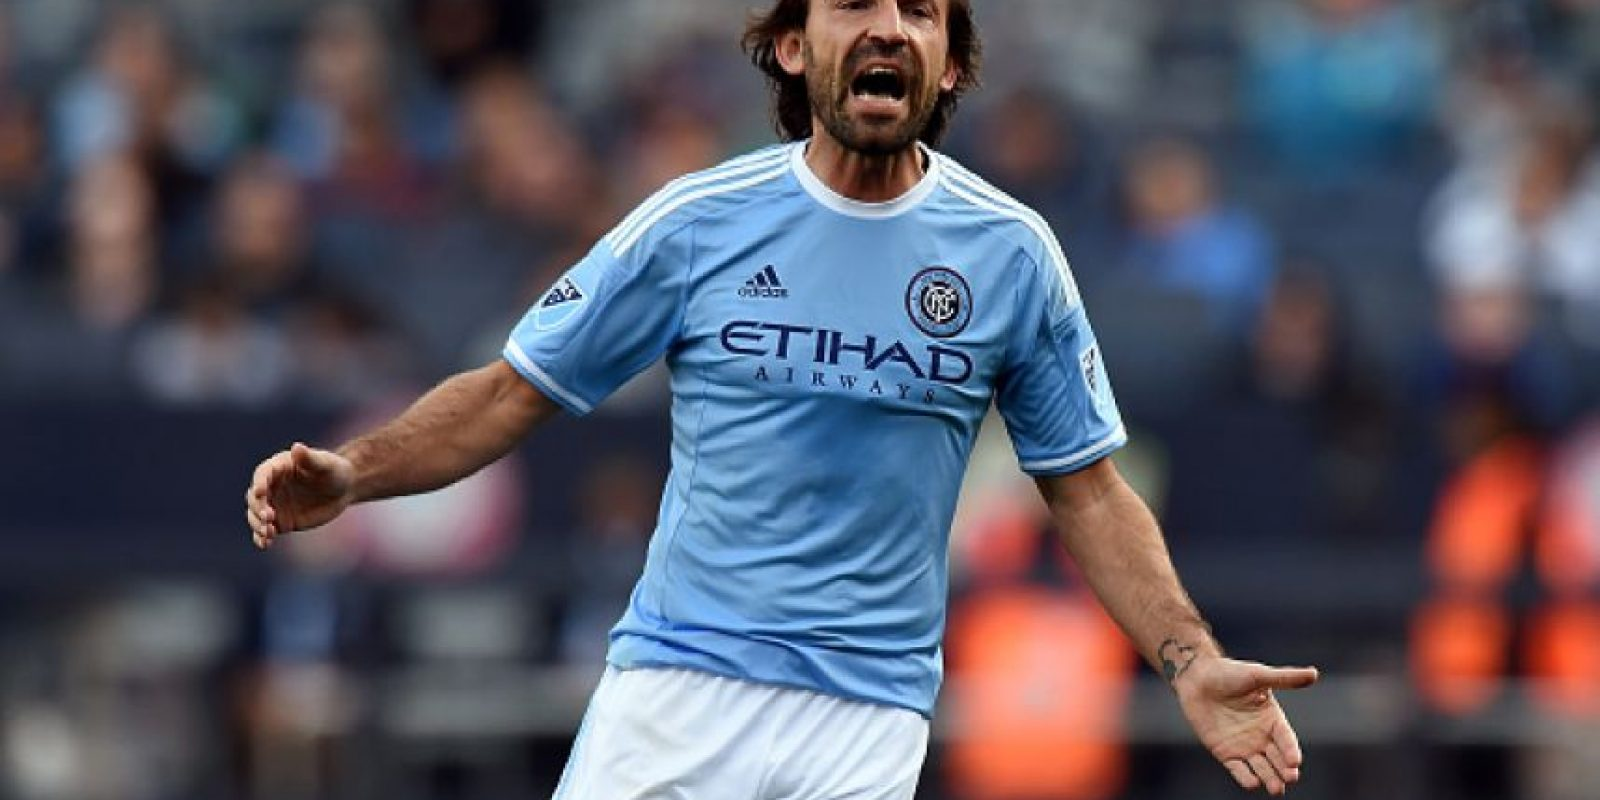 Andrea Pirlo (New York City FC) 5.9 mdd. Foto: Getty Images